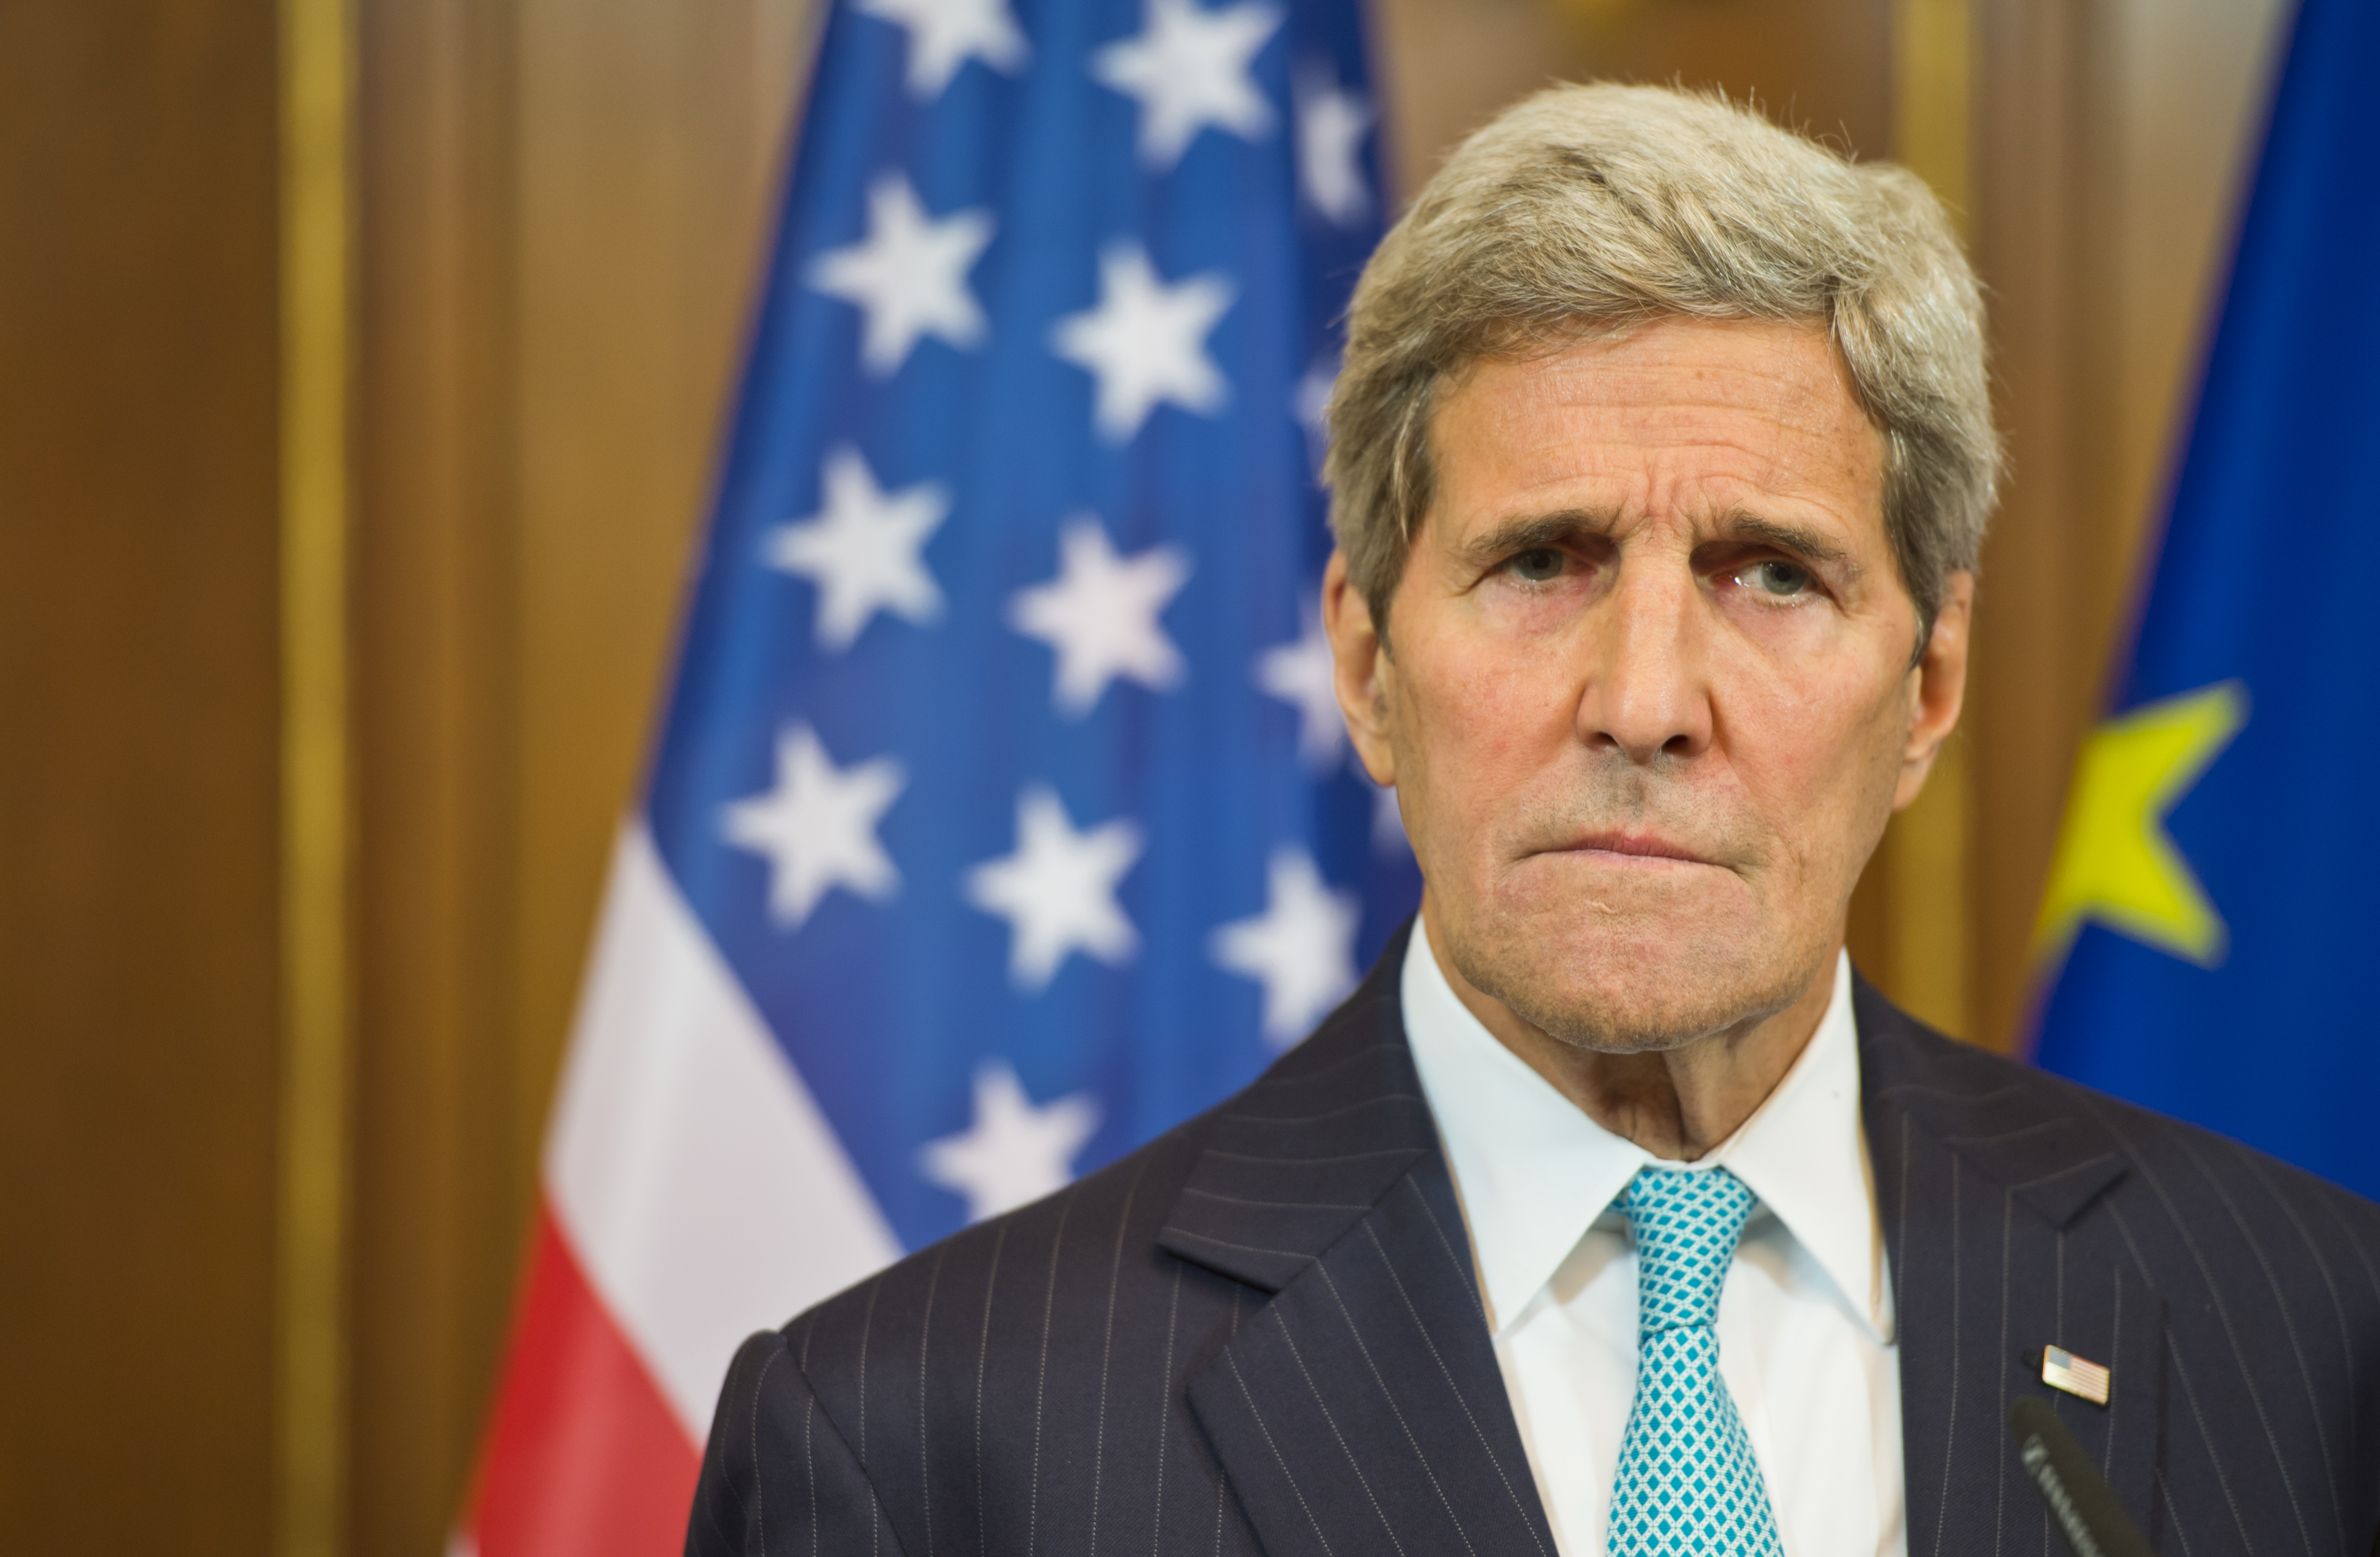 U.S. Secretary of State John Kerry attends a press conference in Villa Borsig on Sept. 20, 2015 in Berlin, Germany